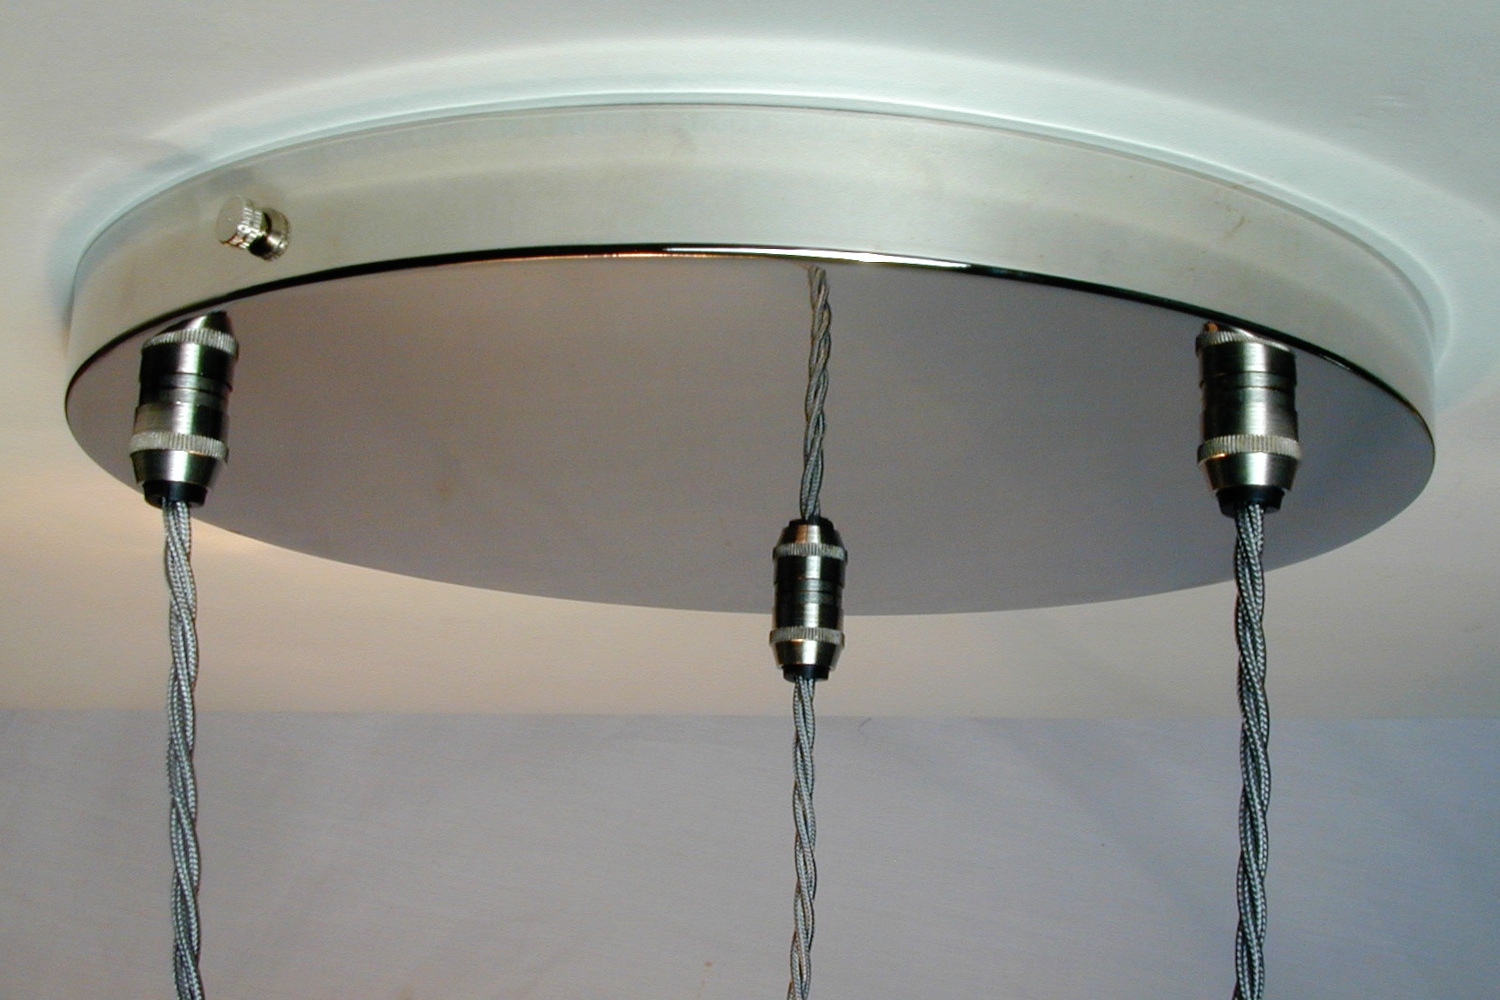 260mm Nickel silver ceiling plate for three pendant shades.